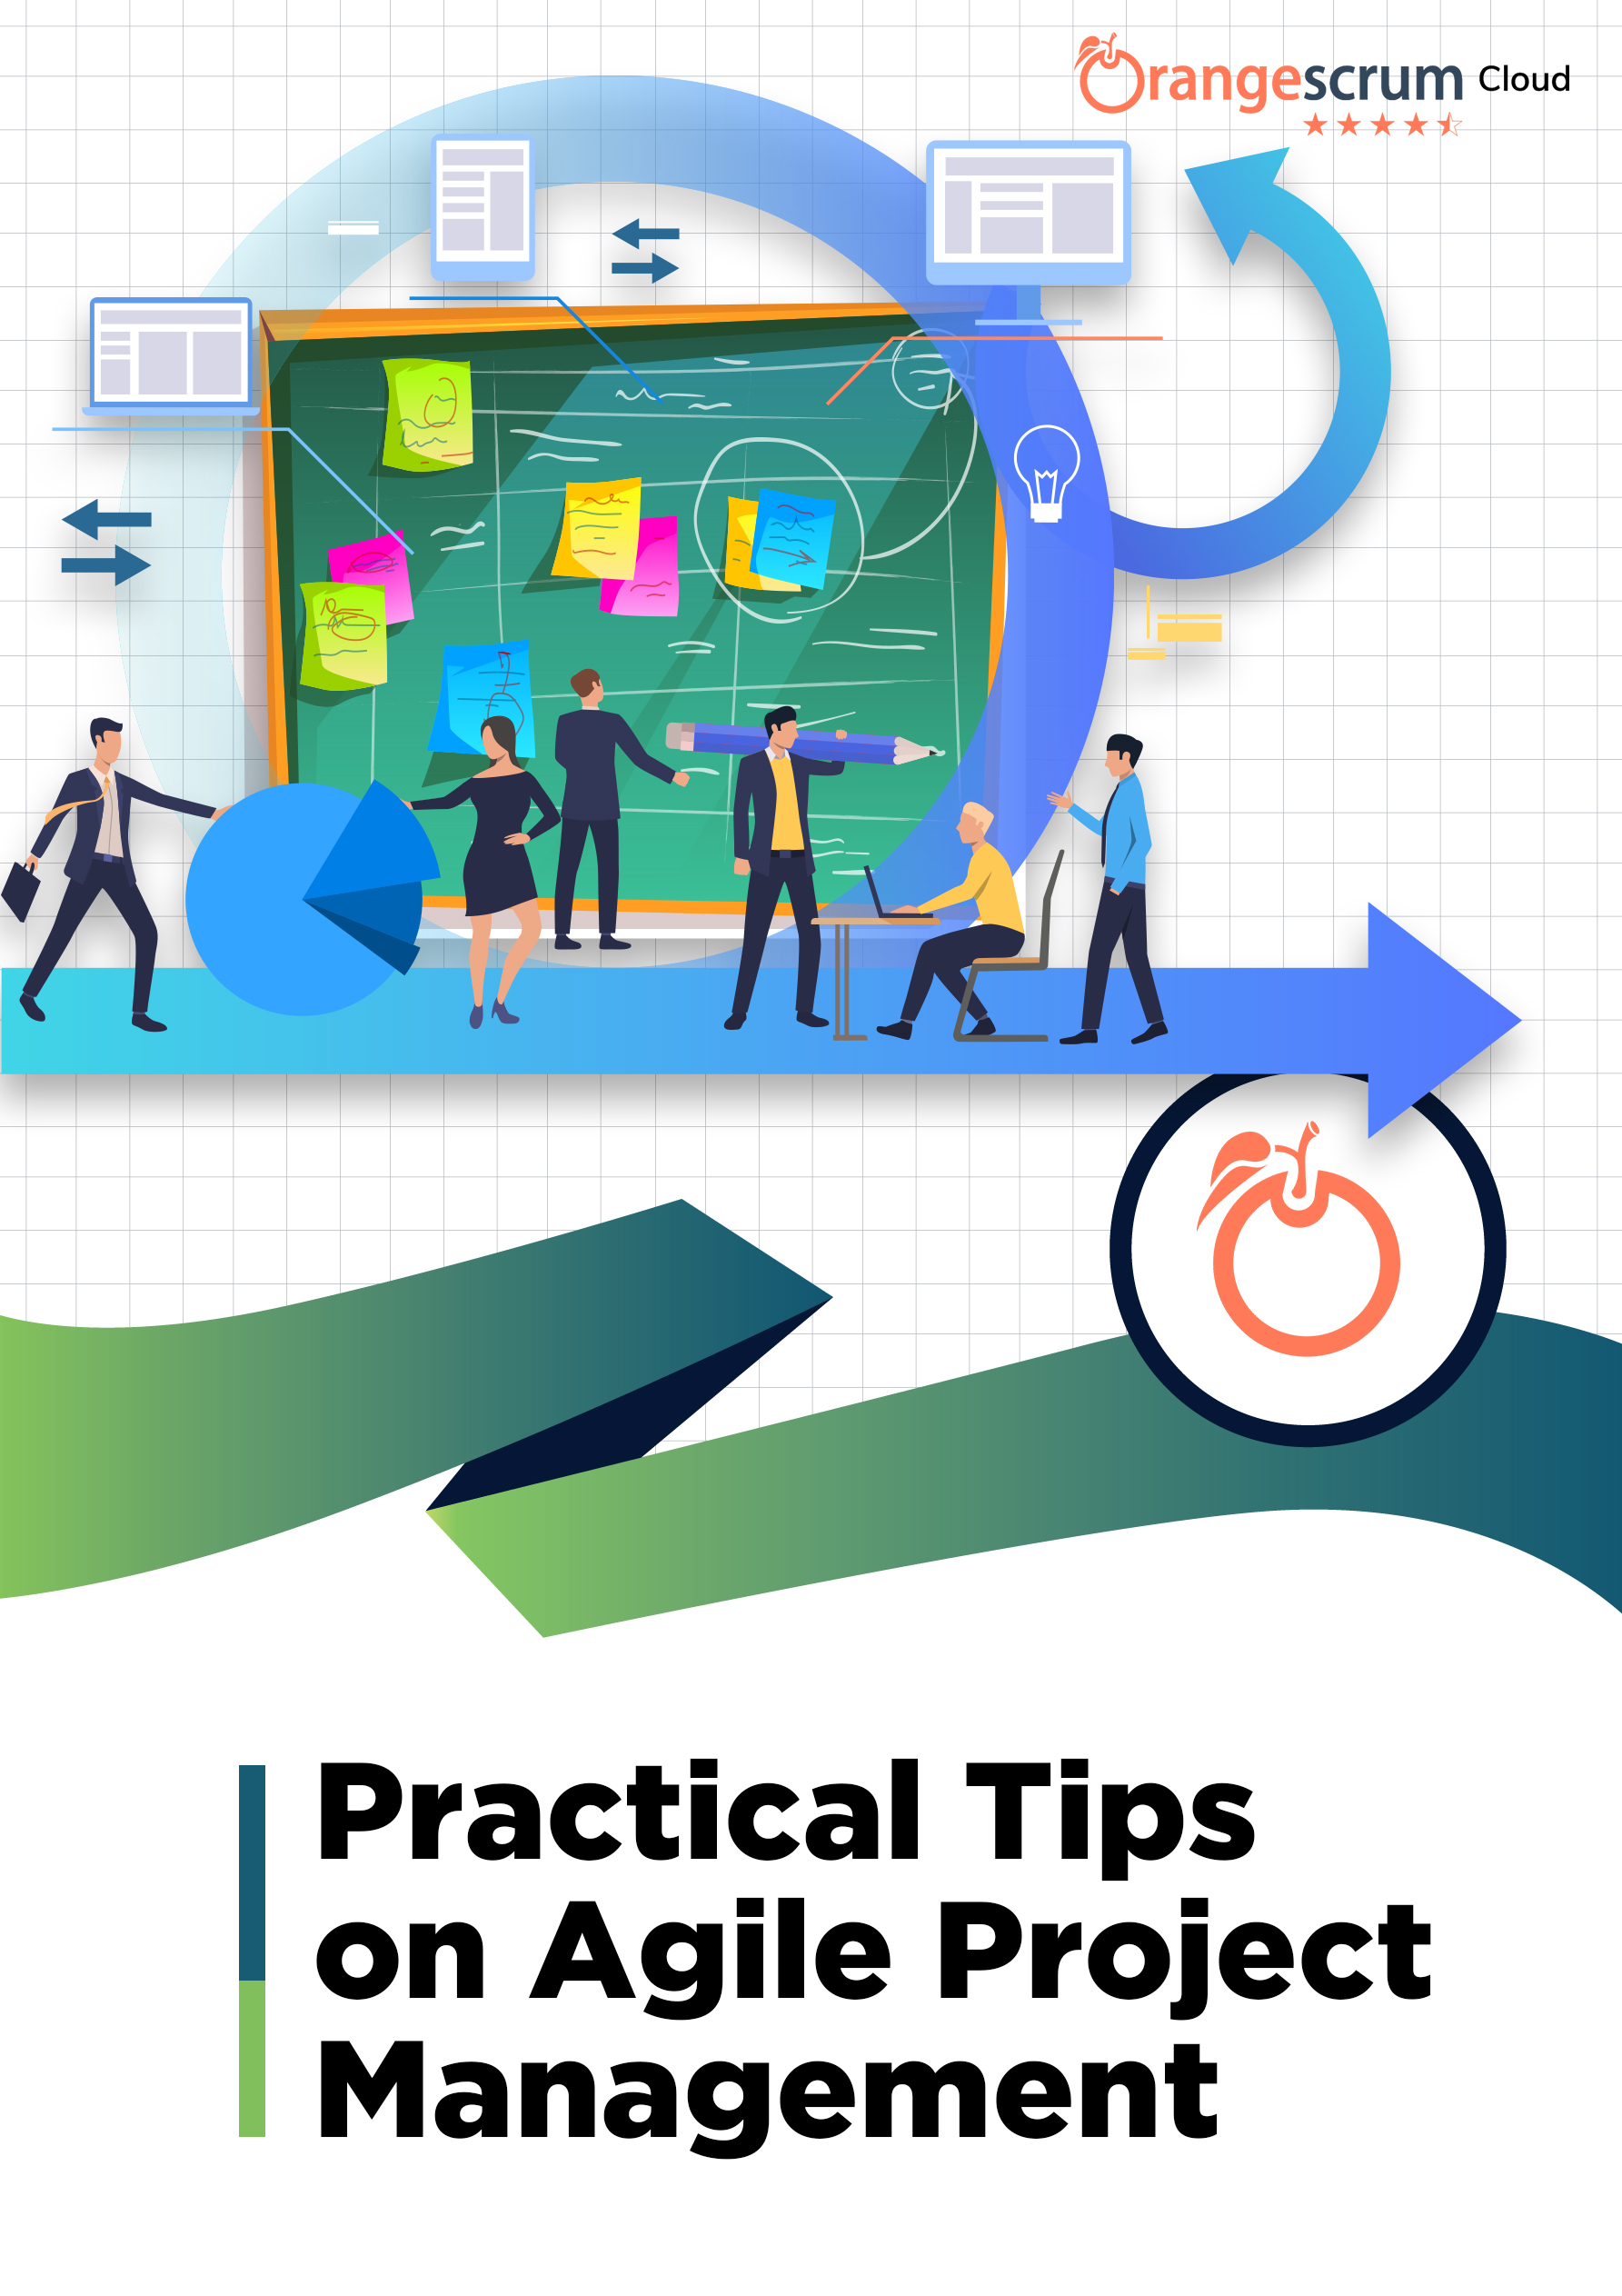 Practical Tips on Agile Project Management